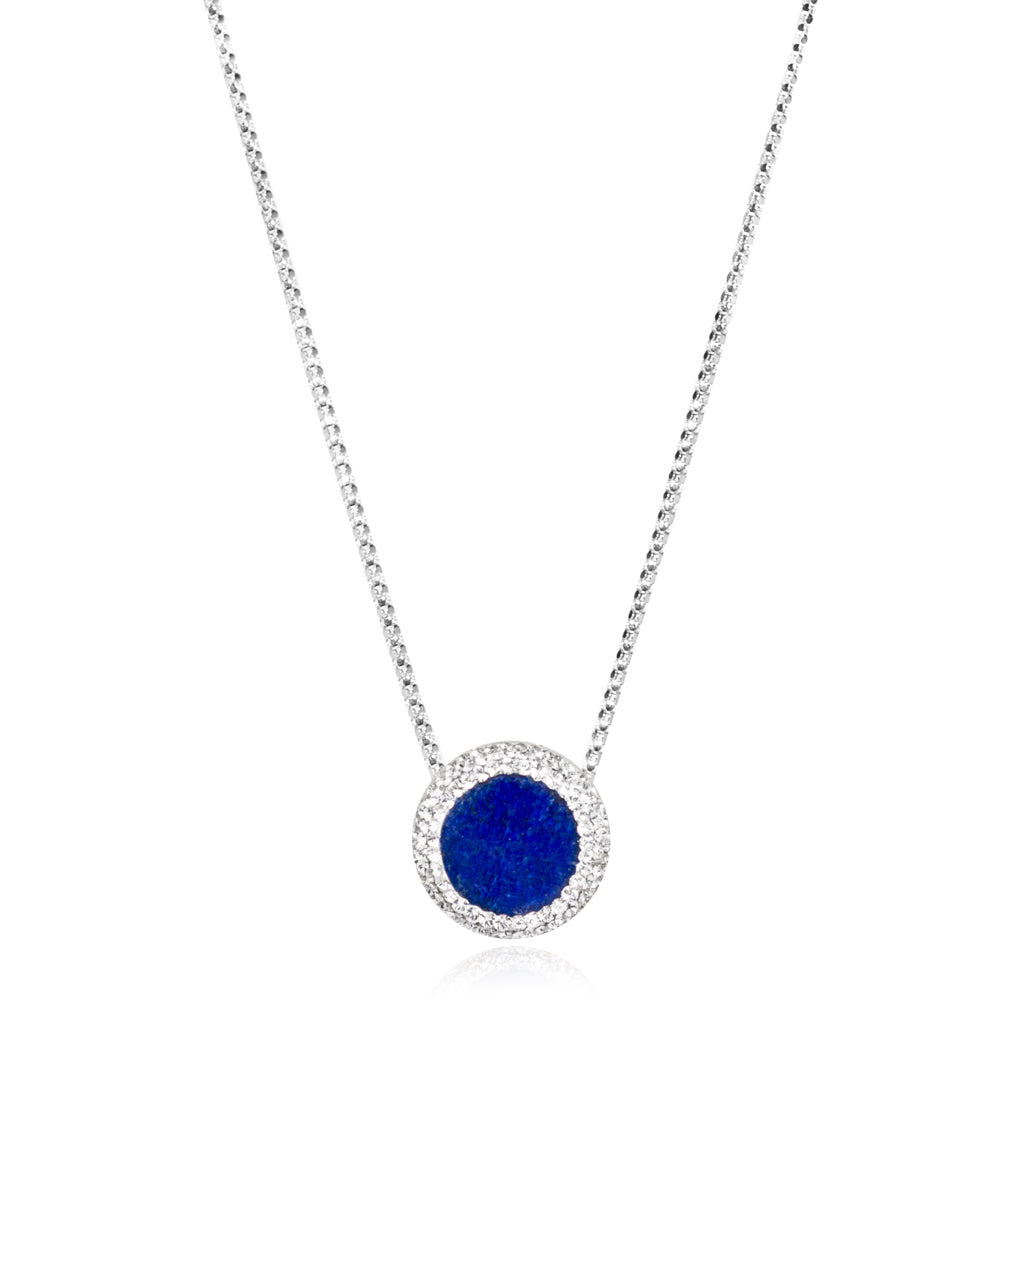 Petite Round Gem Necklace